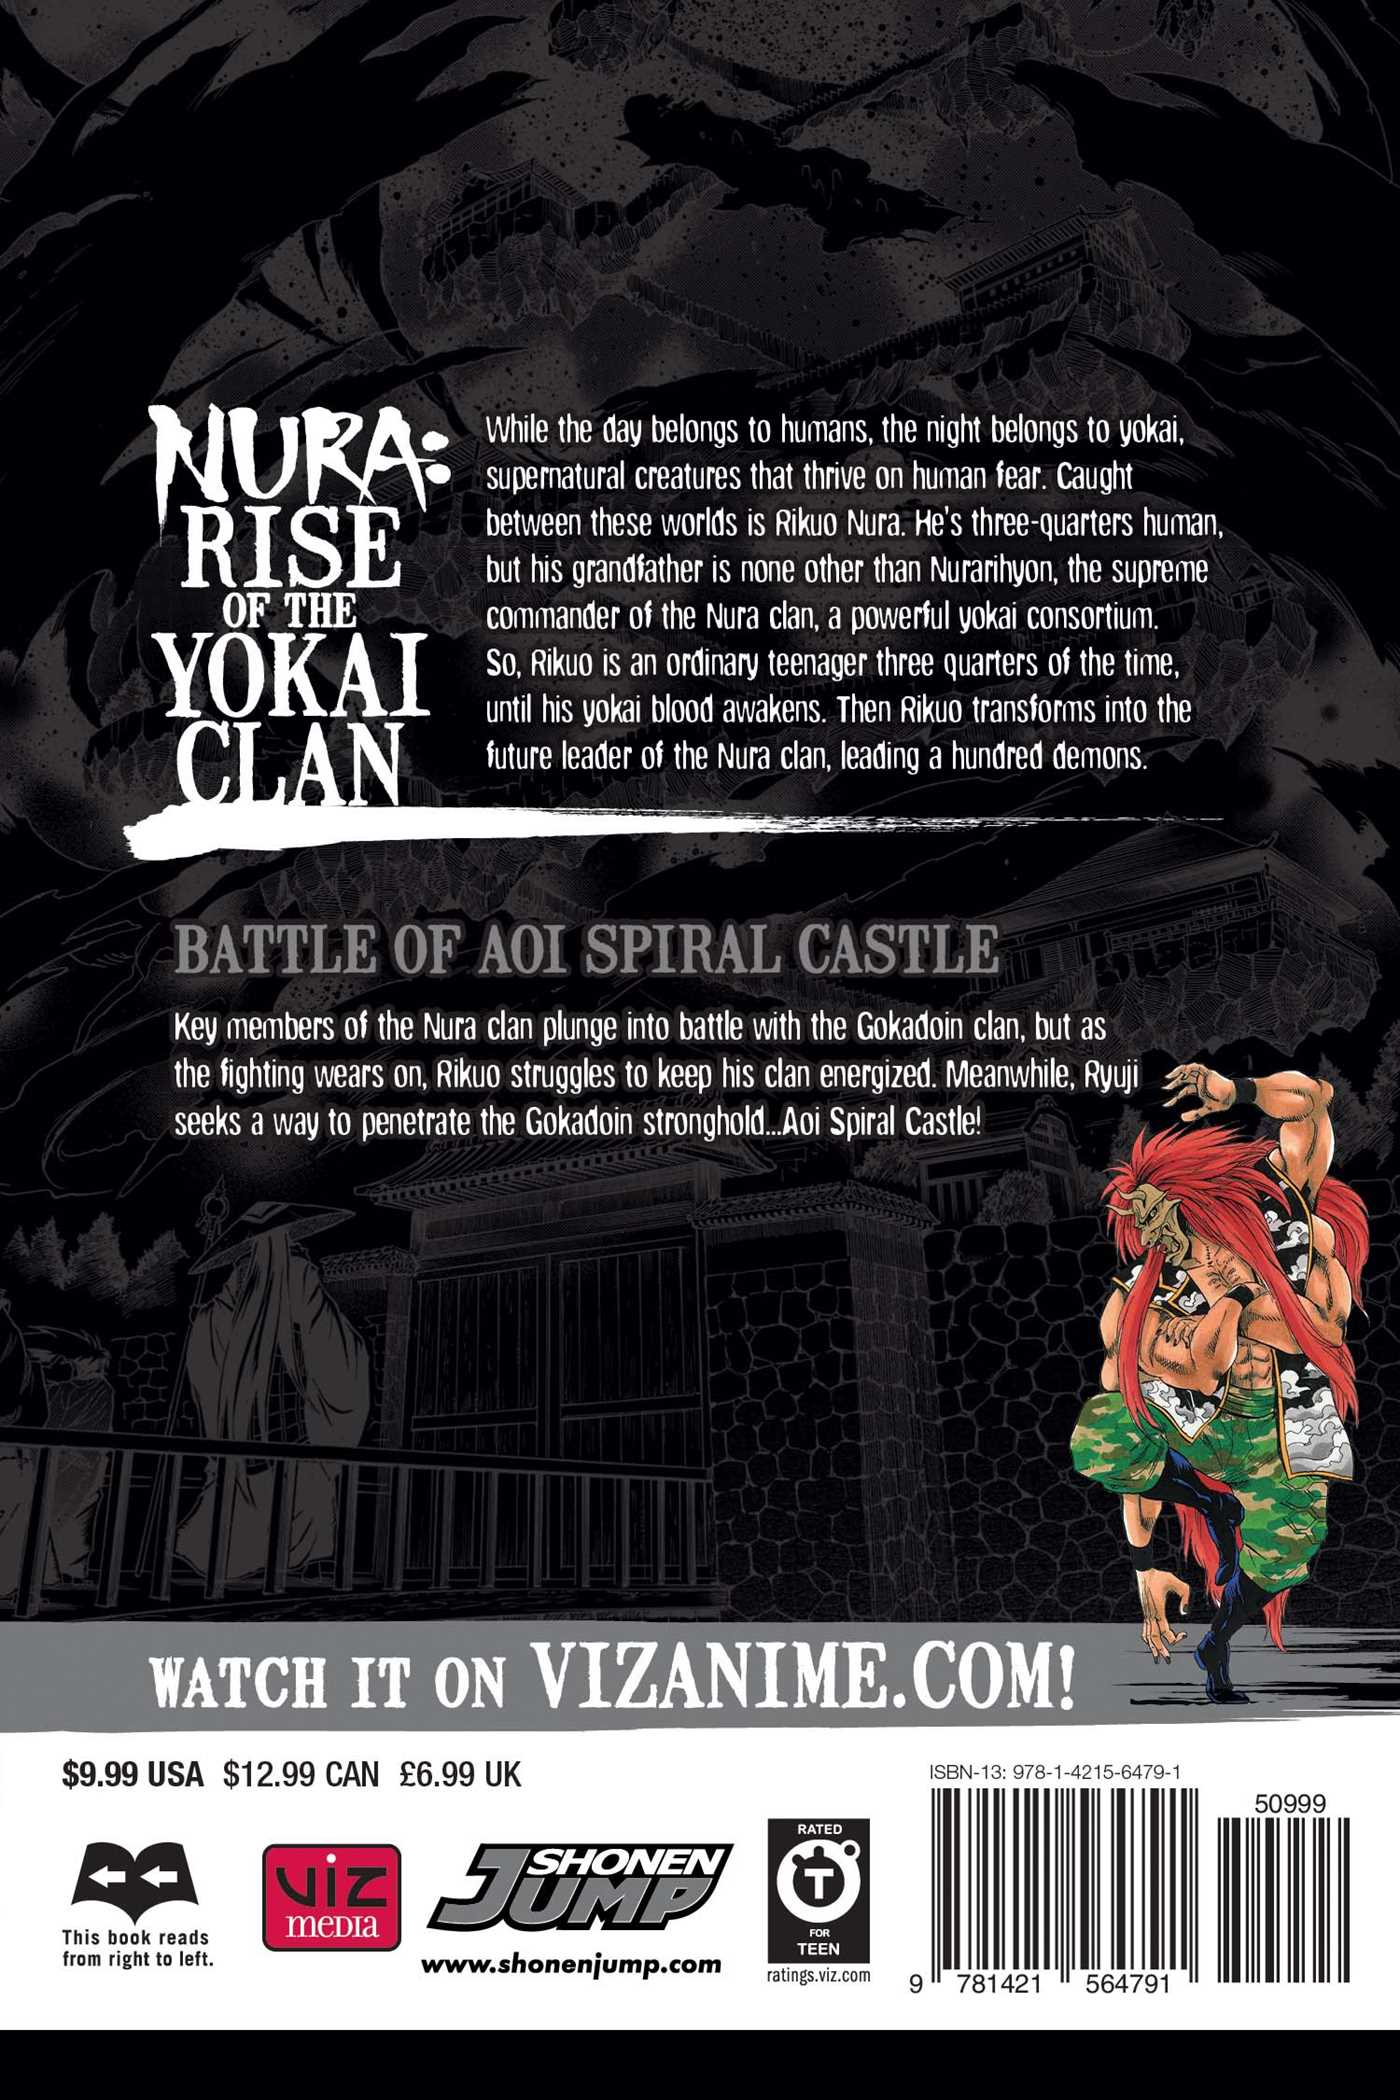 Nura rise of the yokai clan vol 24 9781421564791 hr back